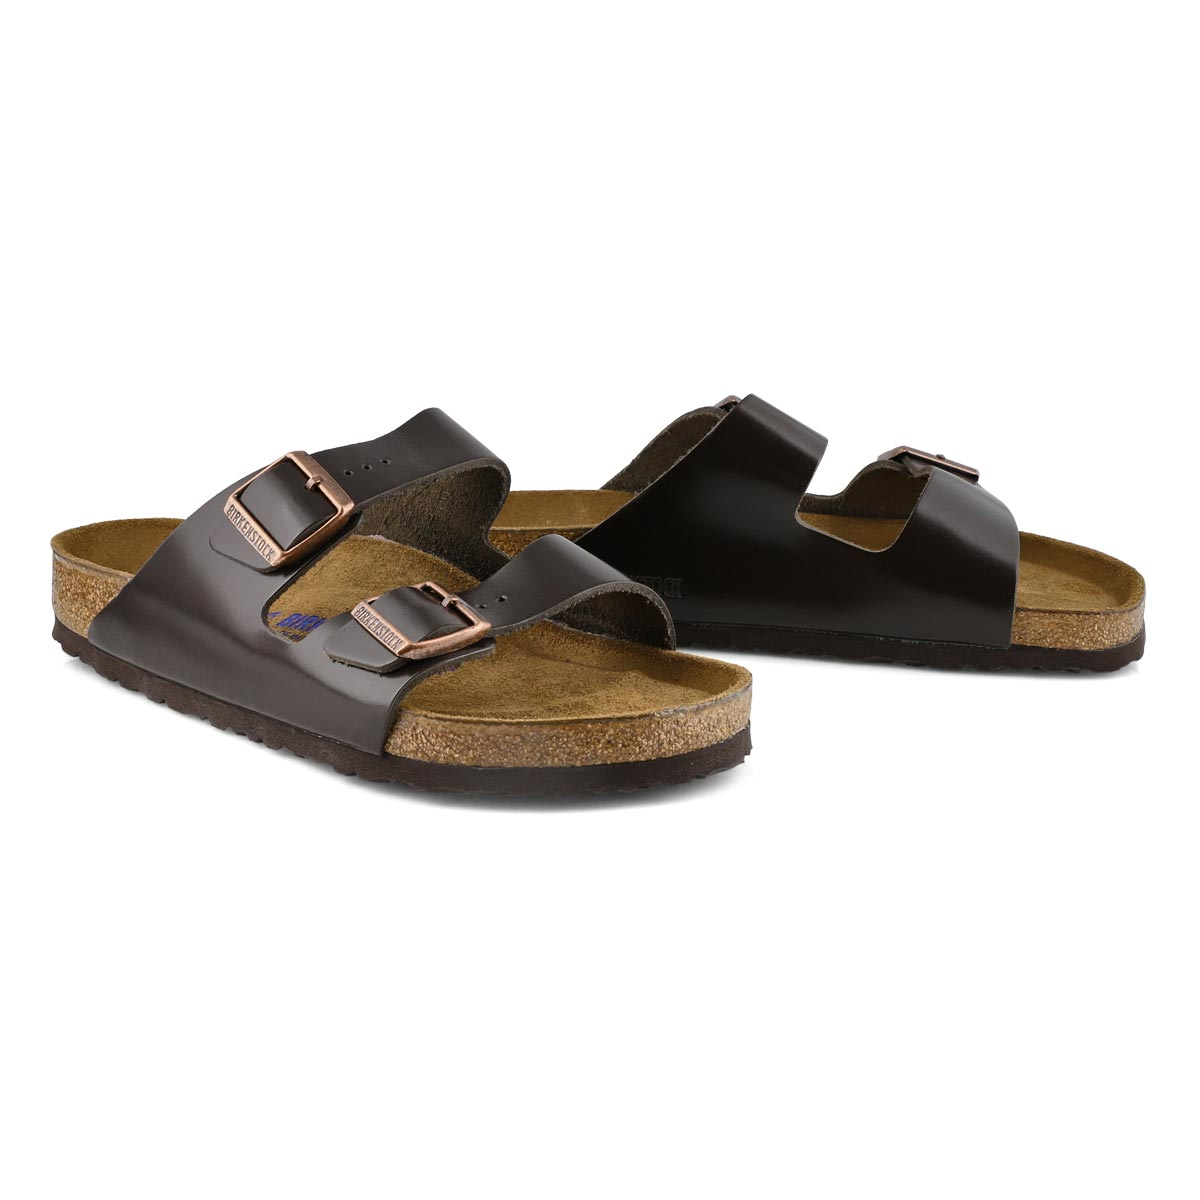 Men's ARIZONA LTR brown 2 strap sandal